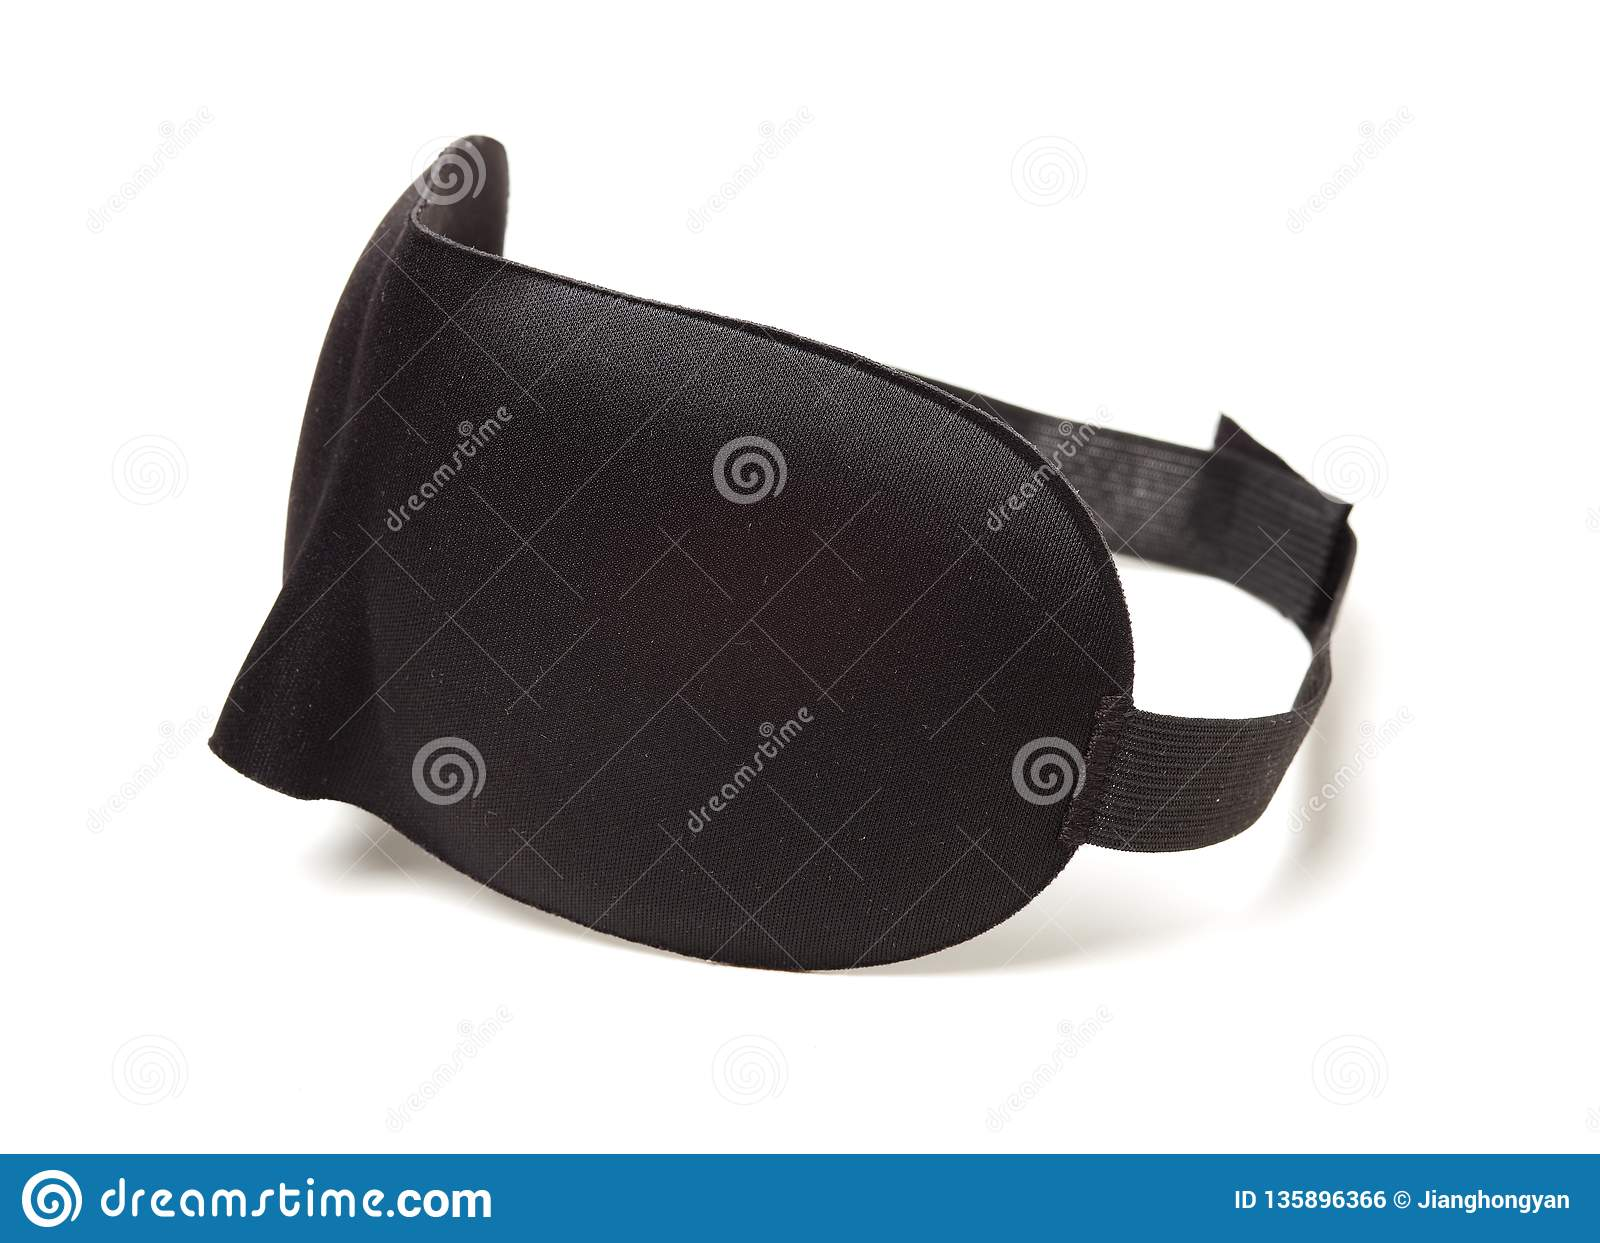 8d70bfd47c1 Black cloth eye mask stock photo. Image of background - 135896366